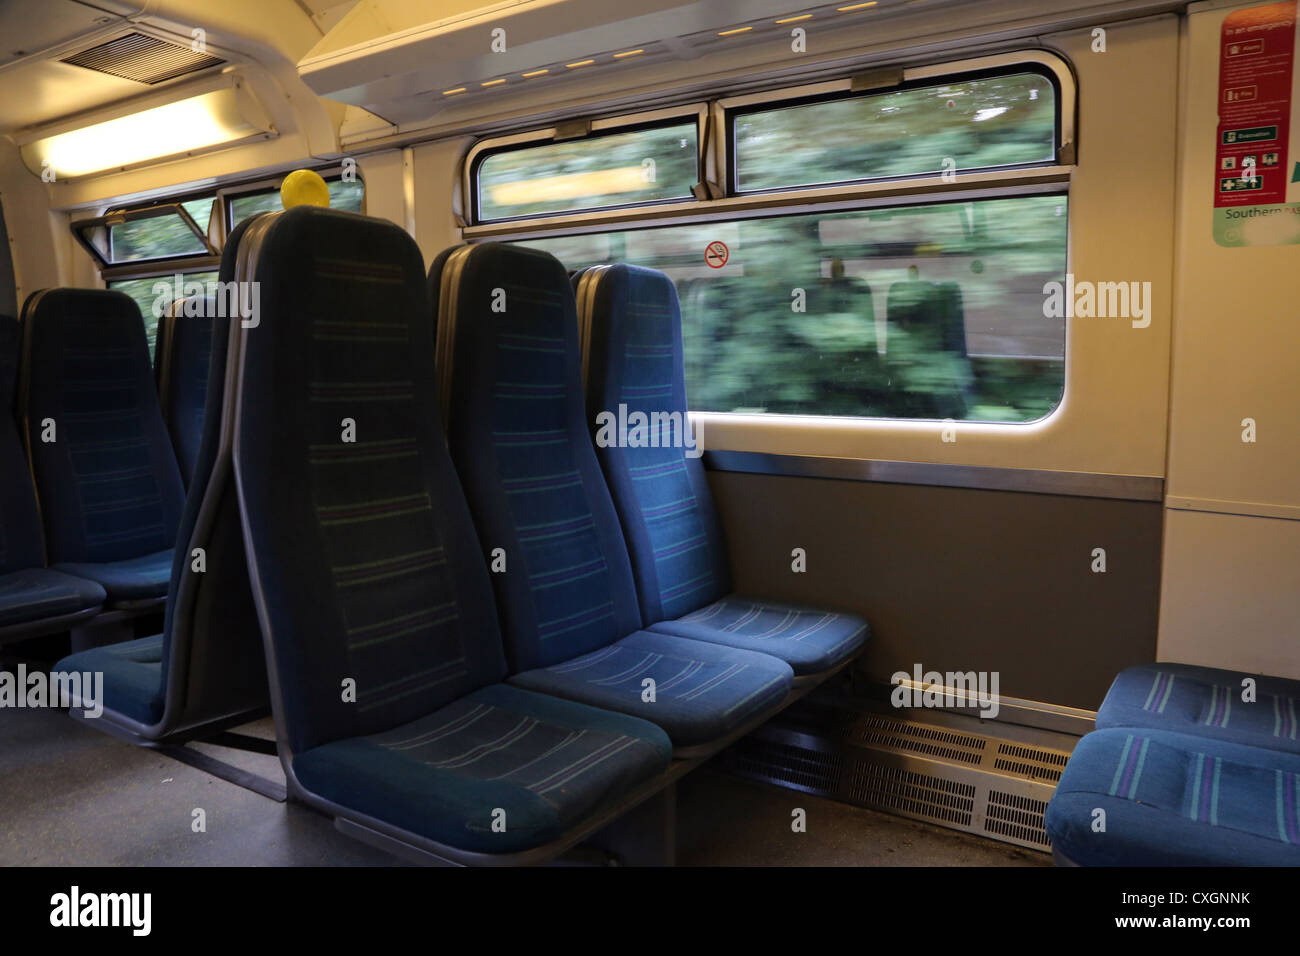 Interior Of Empty Train Carriage England - Stock Image